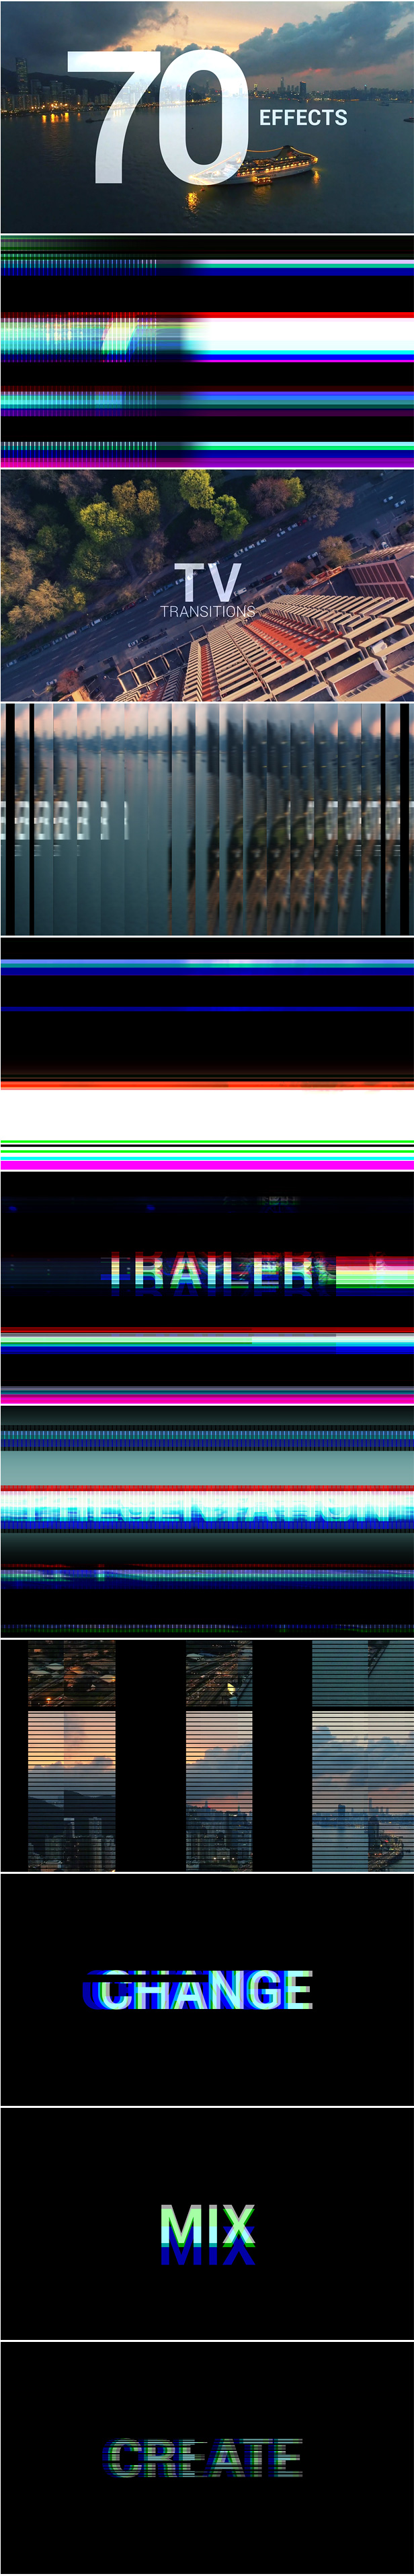 Transitions Pack After Effects Template - glitch, blur, griddler & TV effects transitions